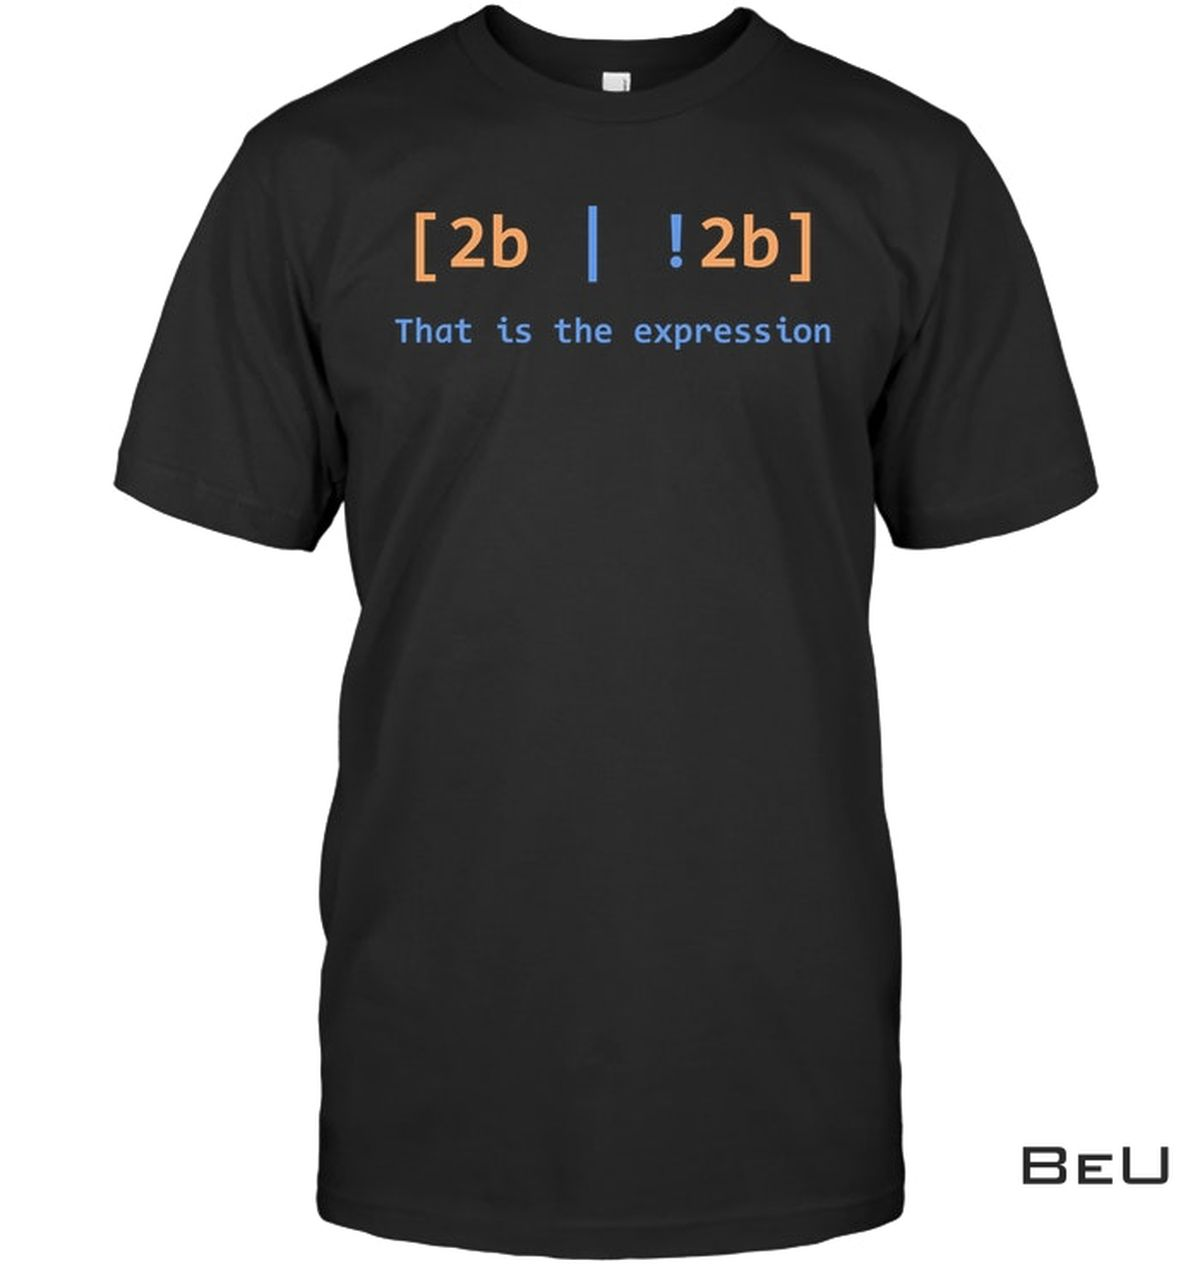 New 2b 2b That Is The Expression Shirt, hoodie, tank top